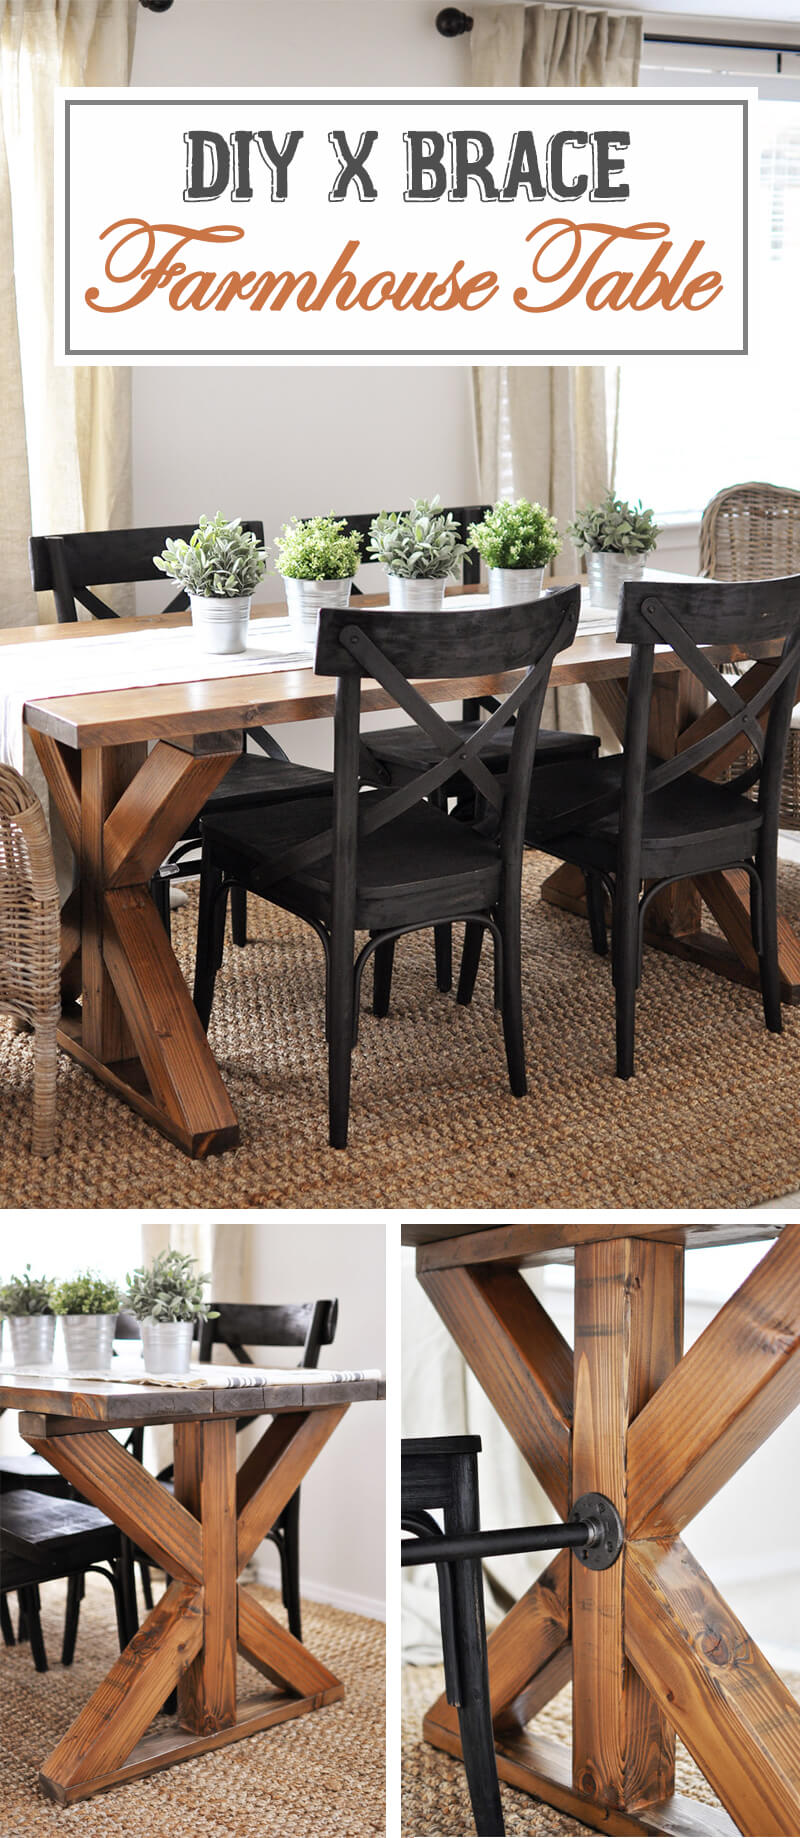 best rustic diy farmhouse table ideas and designs for homebnc accent brace design commercial nic tables behind couch with stools antique round lamp beach themed lamps dorm black